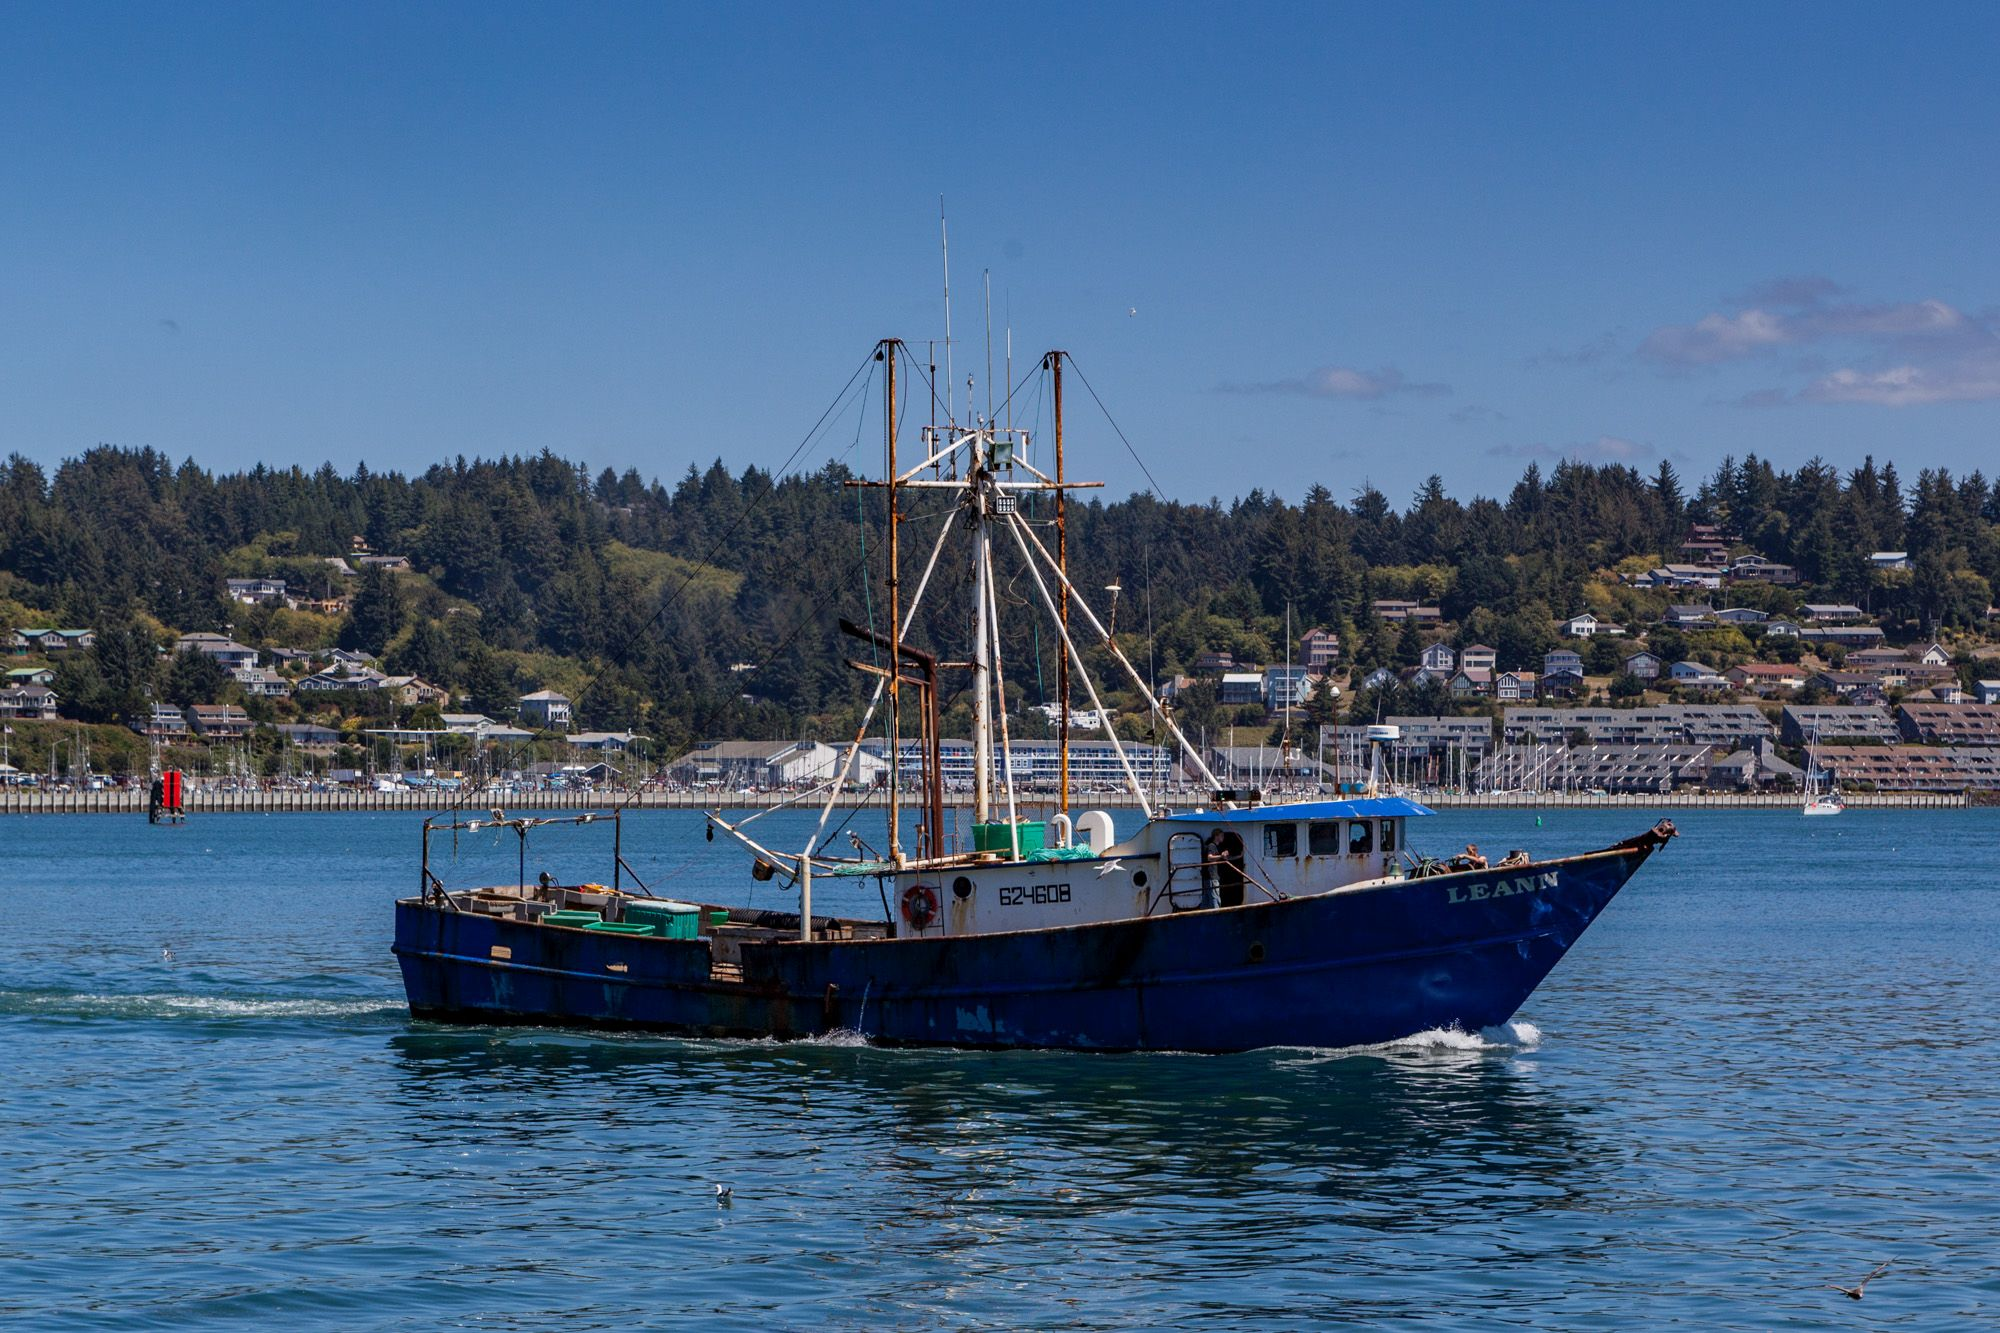 A weekend getaway to newport oregon gate to adventures for Free fishing weekend oregon